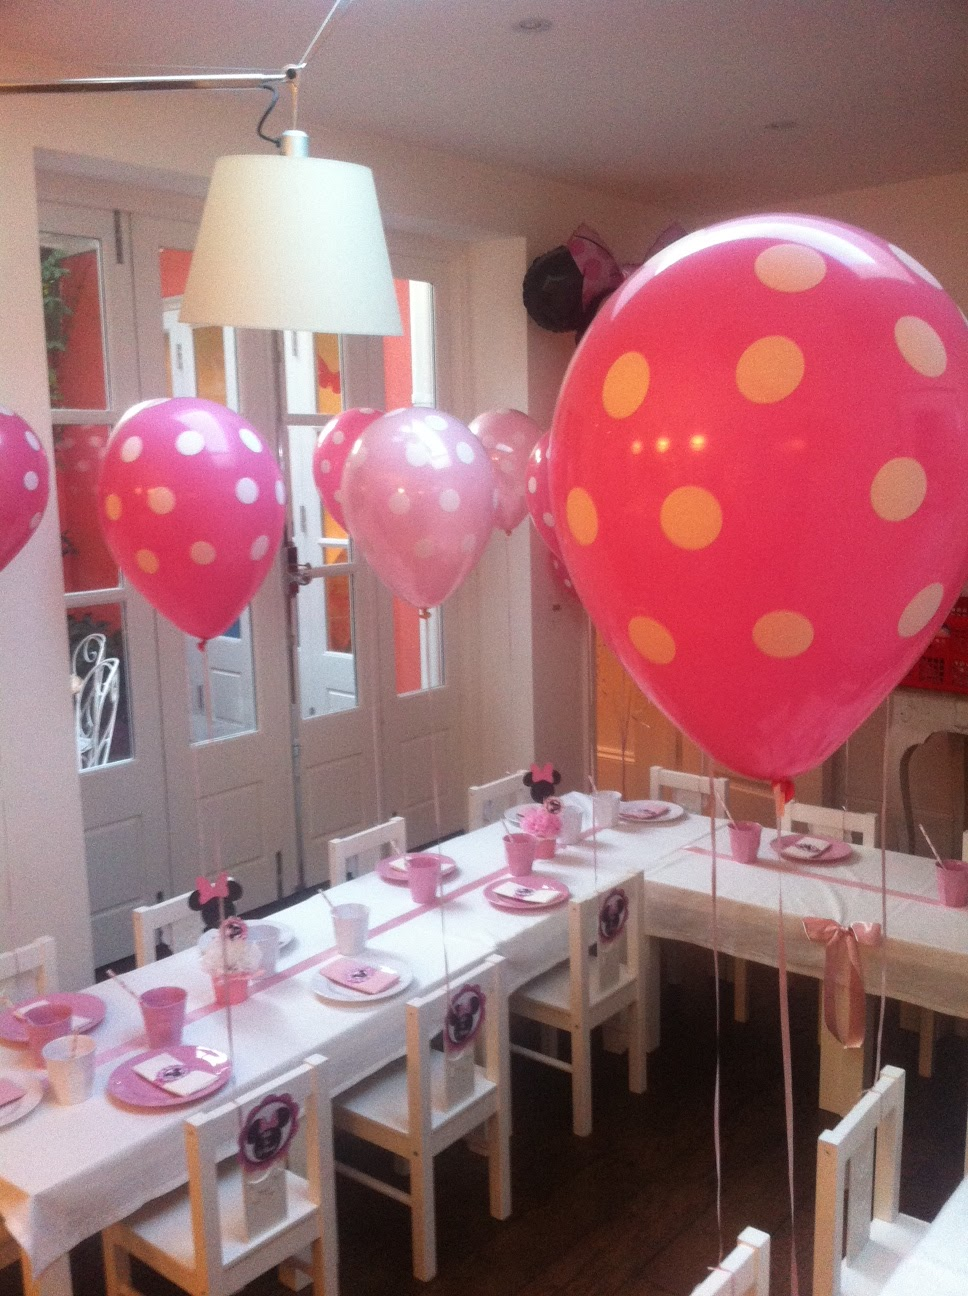 Les Enfants Stylish Childrens Parties Blog Real Party